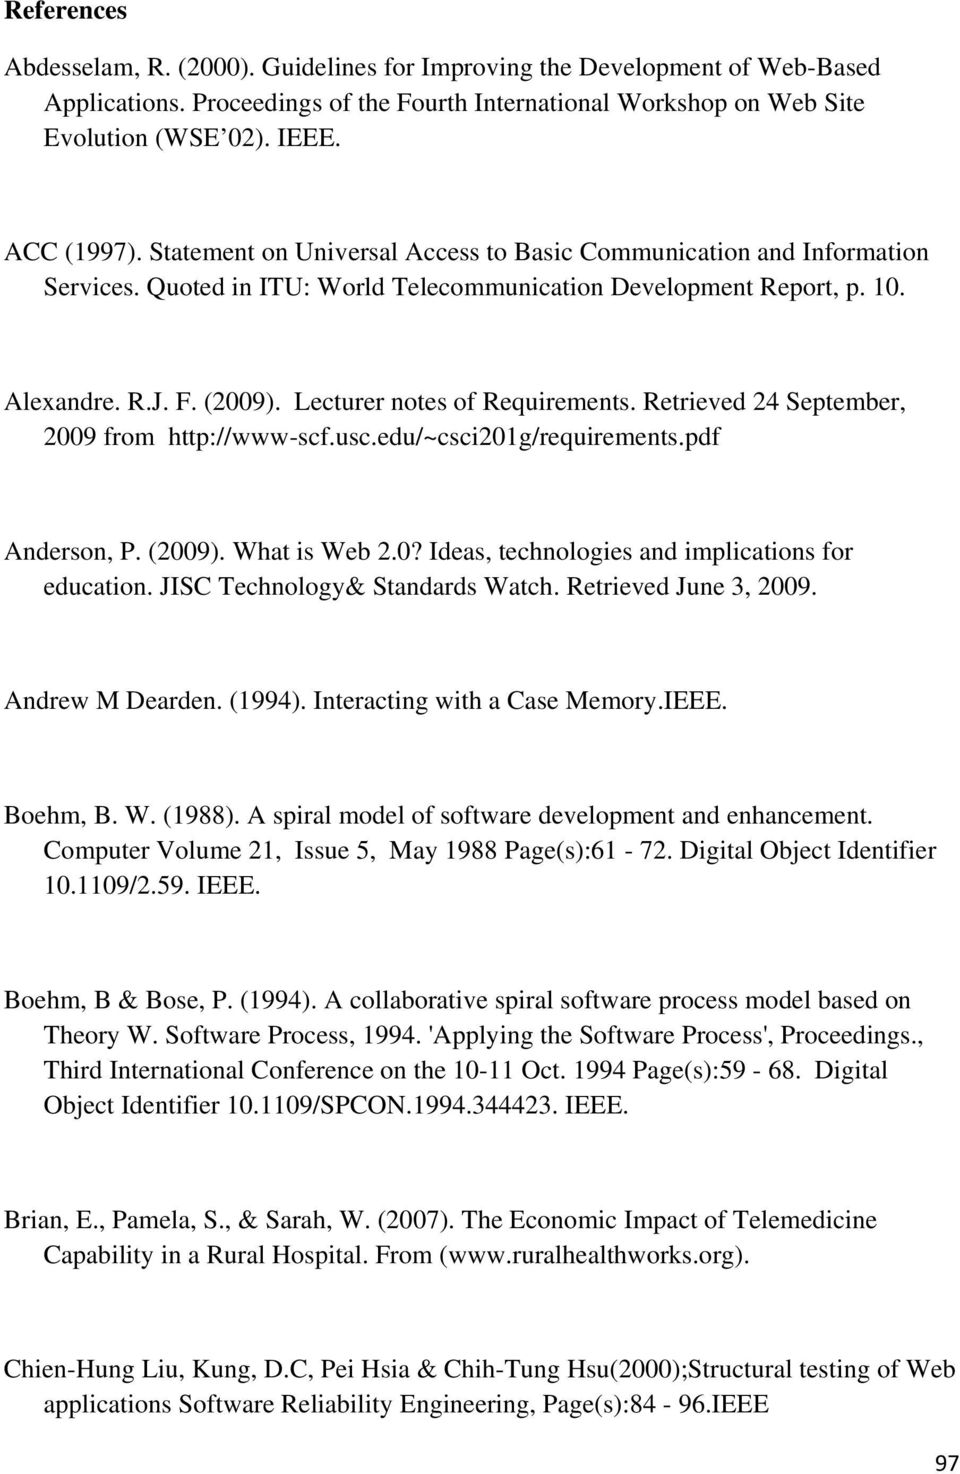 Lecturer notes of Requirements. Retrieved 24 September, 2009 from http://www-scf.usc.edu/~csci201g/requirements.pdf Anderson, P. (2009). What is Web 2.0? Ideas, technologies and implications for education.